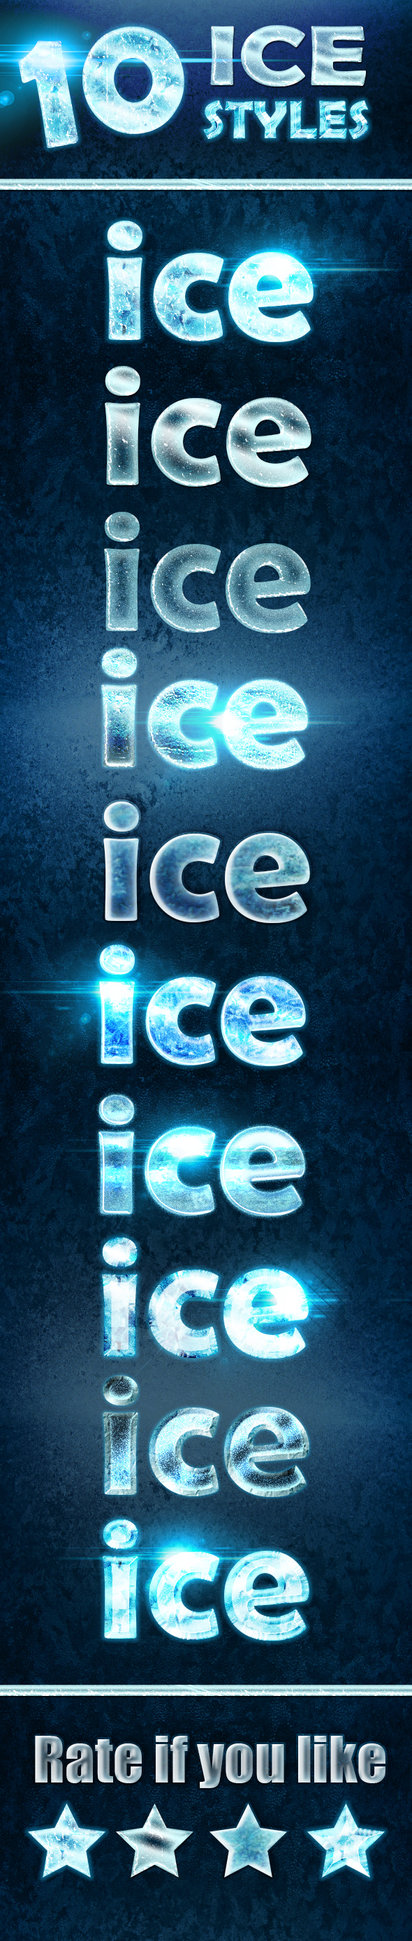 10 Ice and Frozen Effects